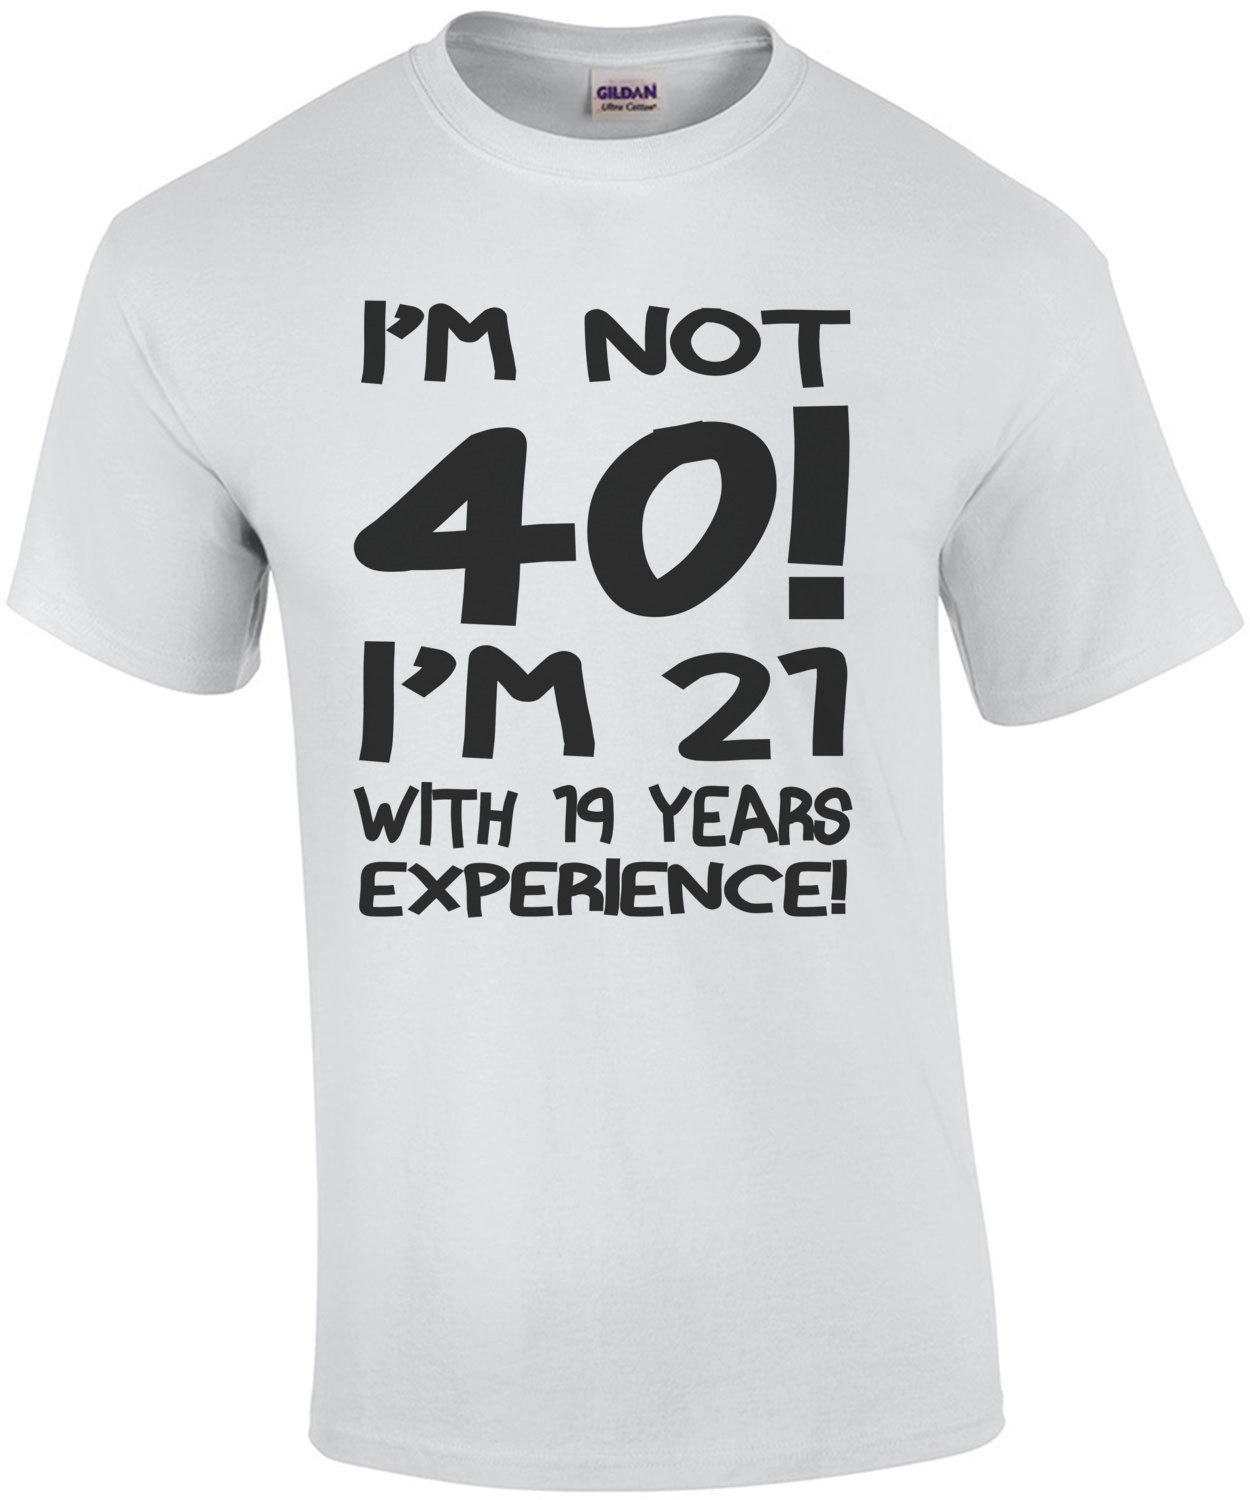 I'm Not 40 I'm 21 With 19 Years Experience T-Shirt